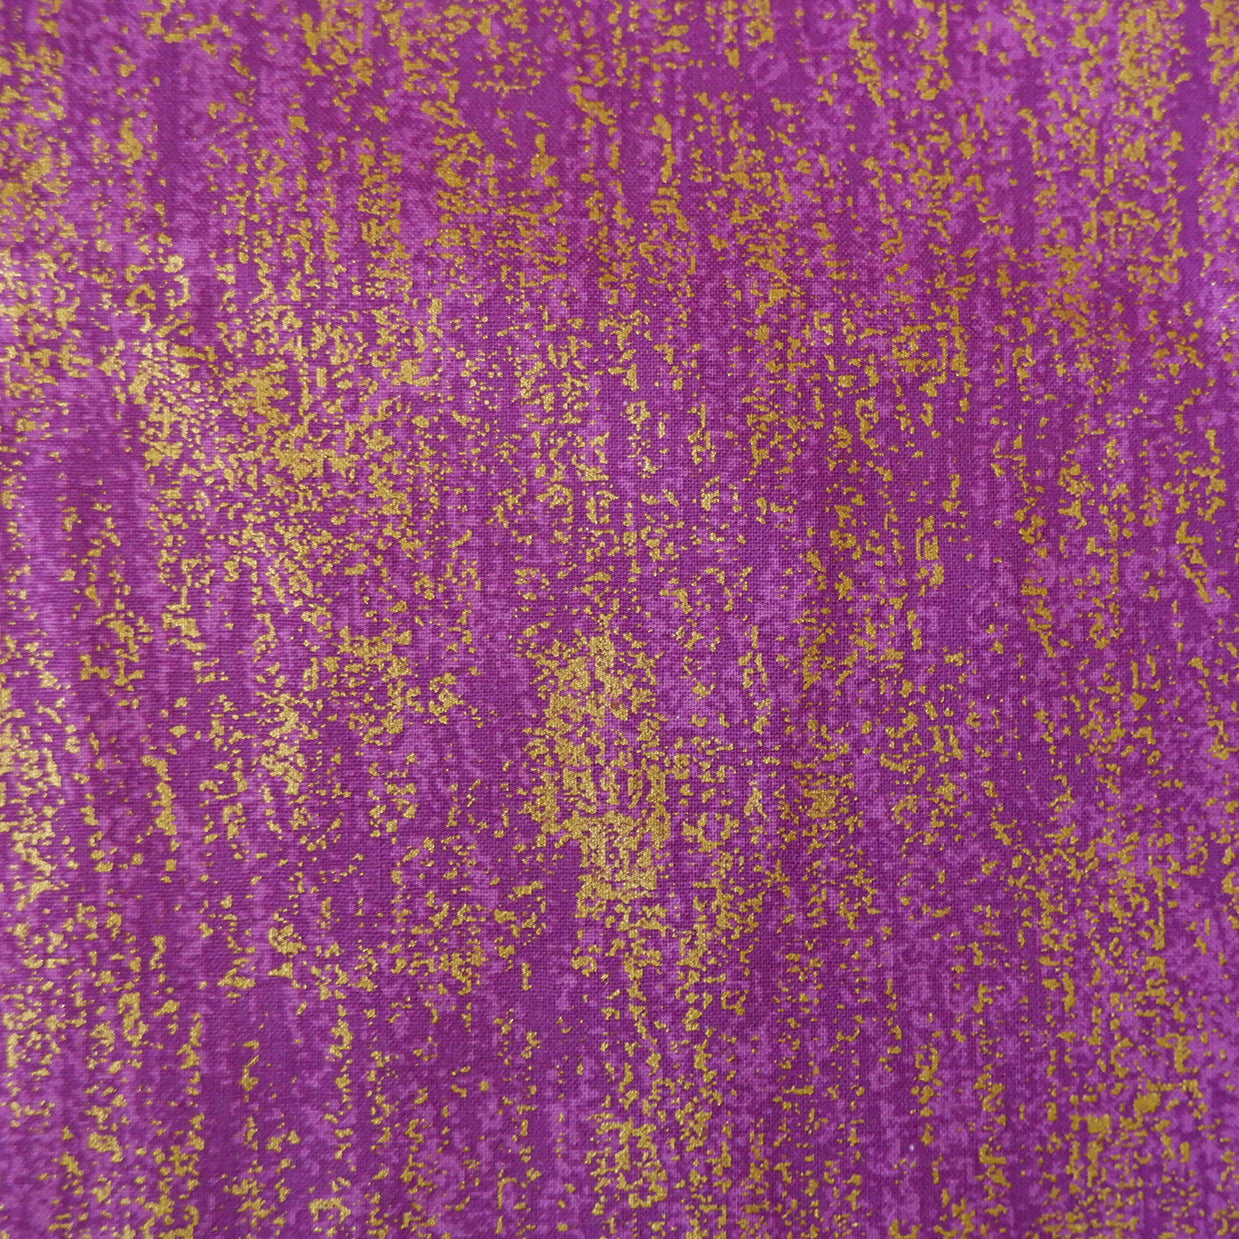 Cotton Fabric, purple with gold accents - Price per half metre